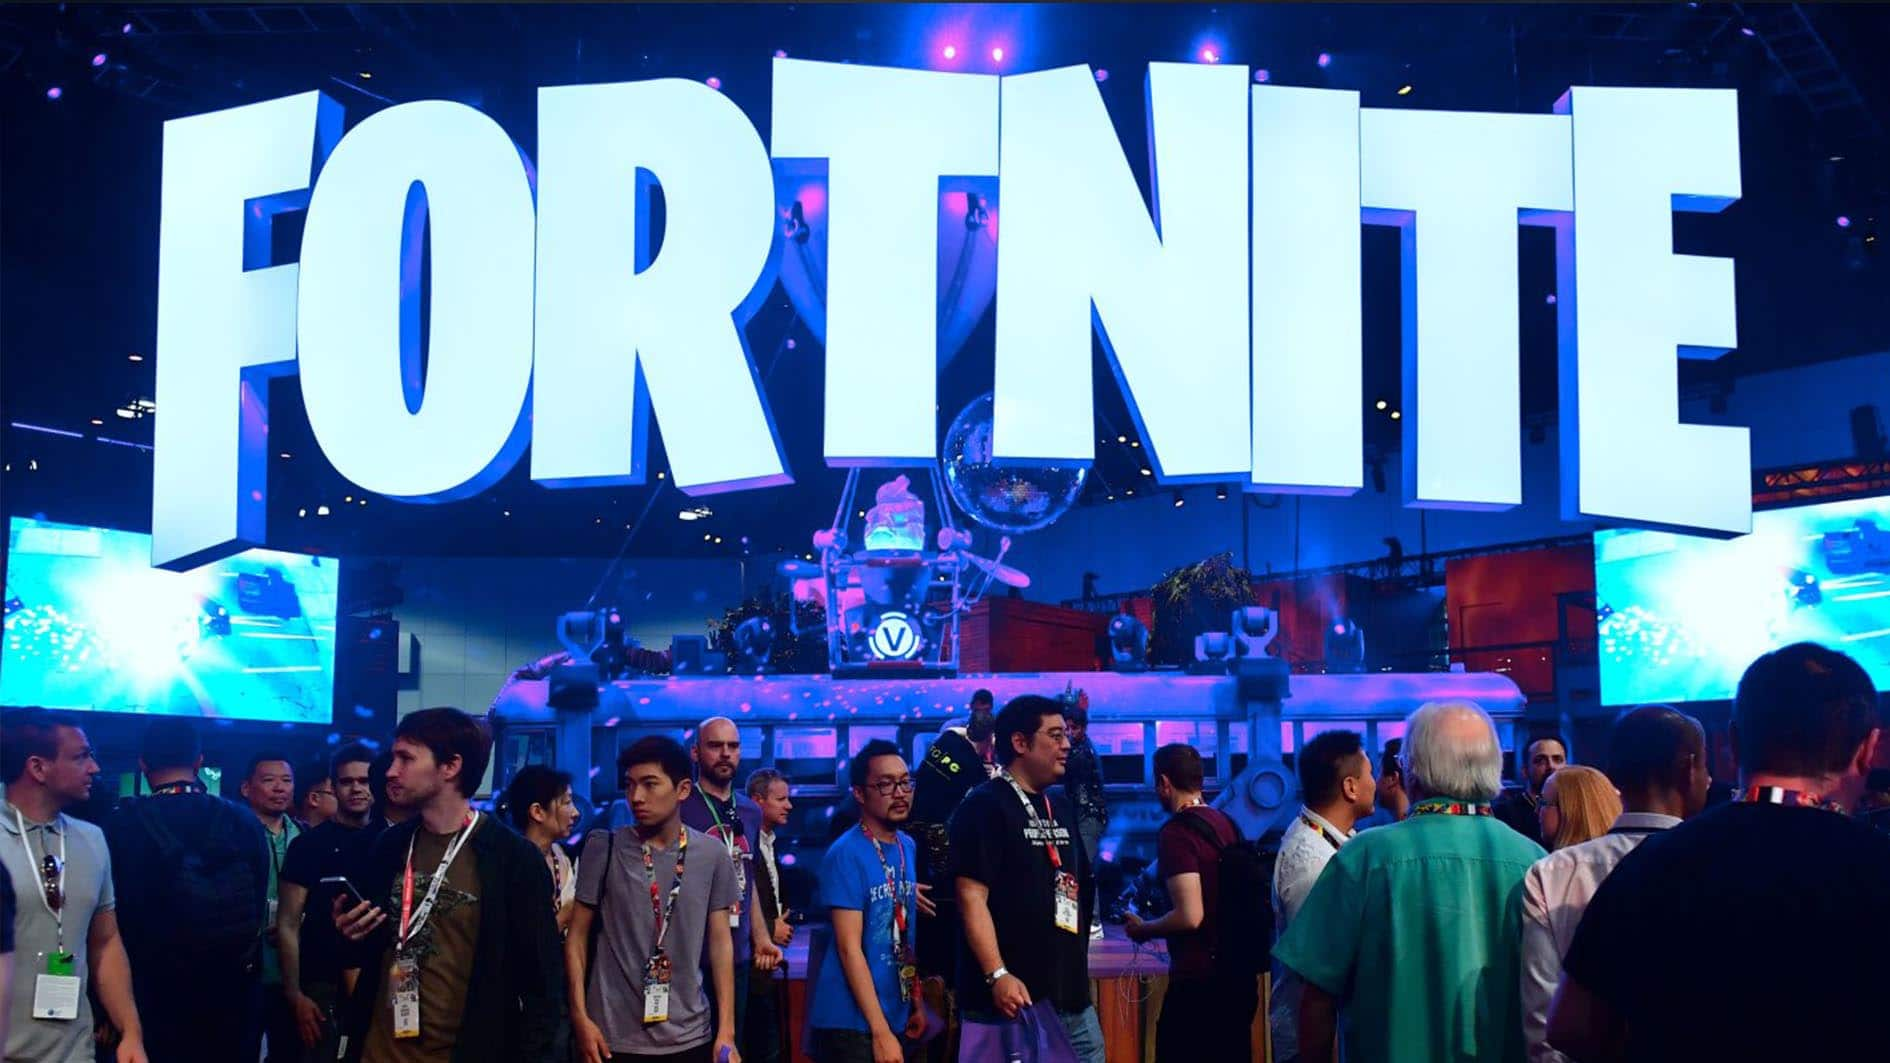 Fortnite On Switch Has Built-In Voice Chat, No App Required